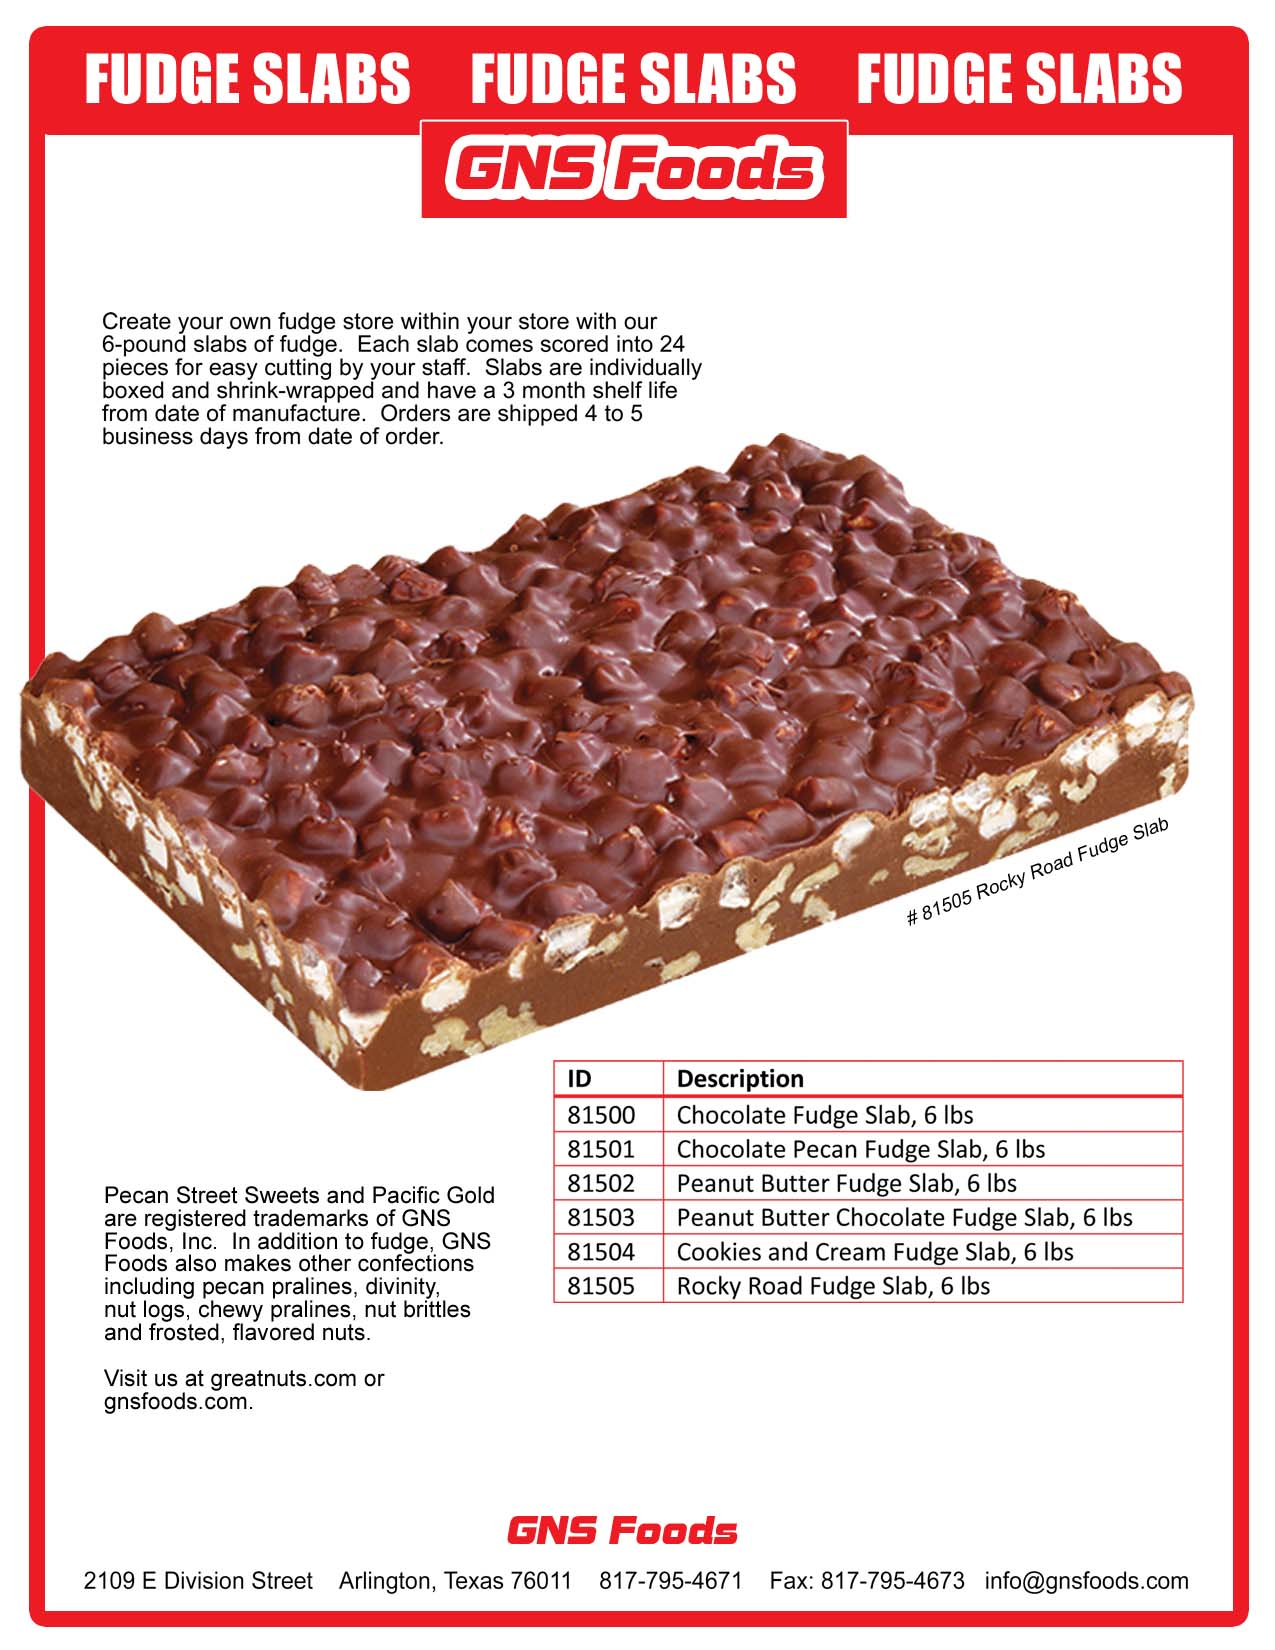 fudge-brochure-p-4-low-res-copy.jpg